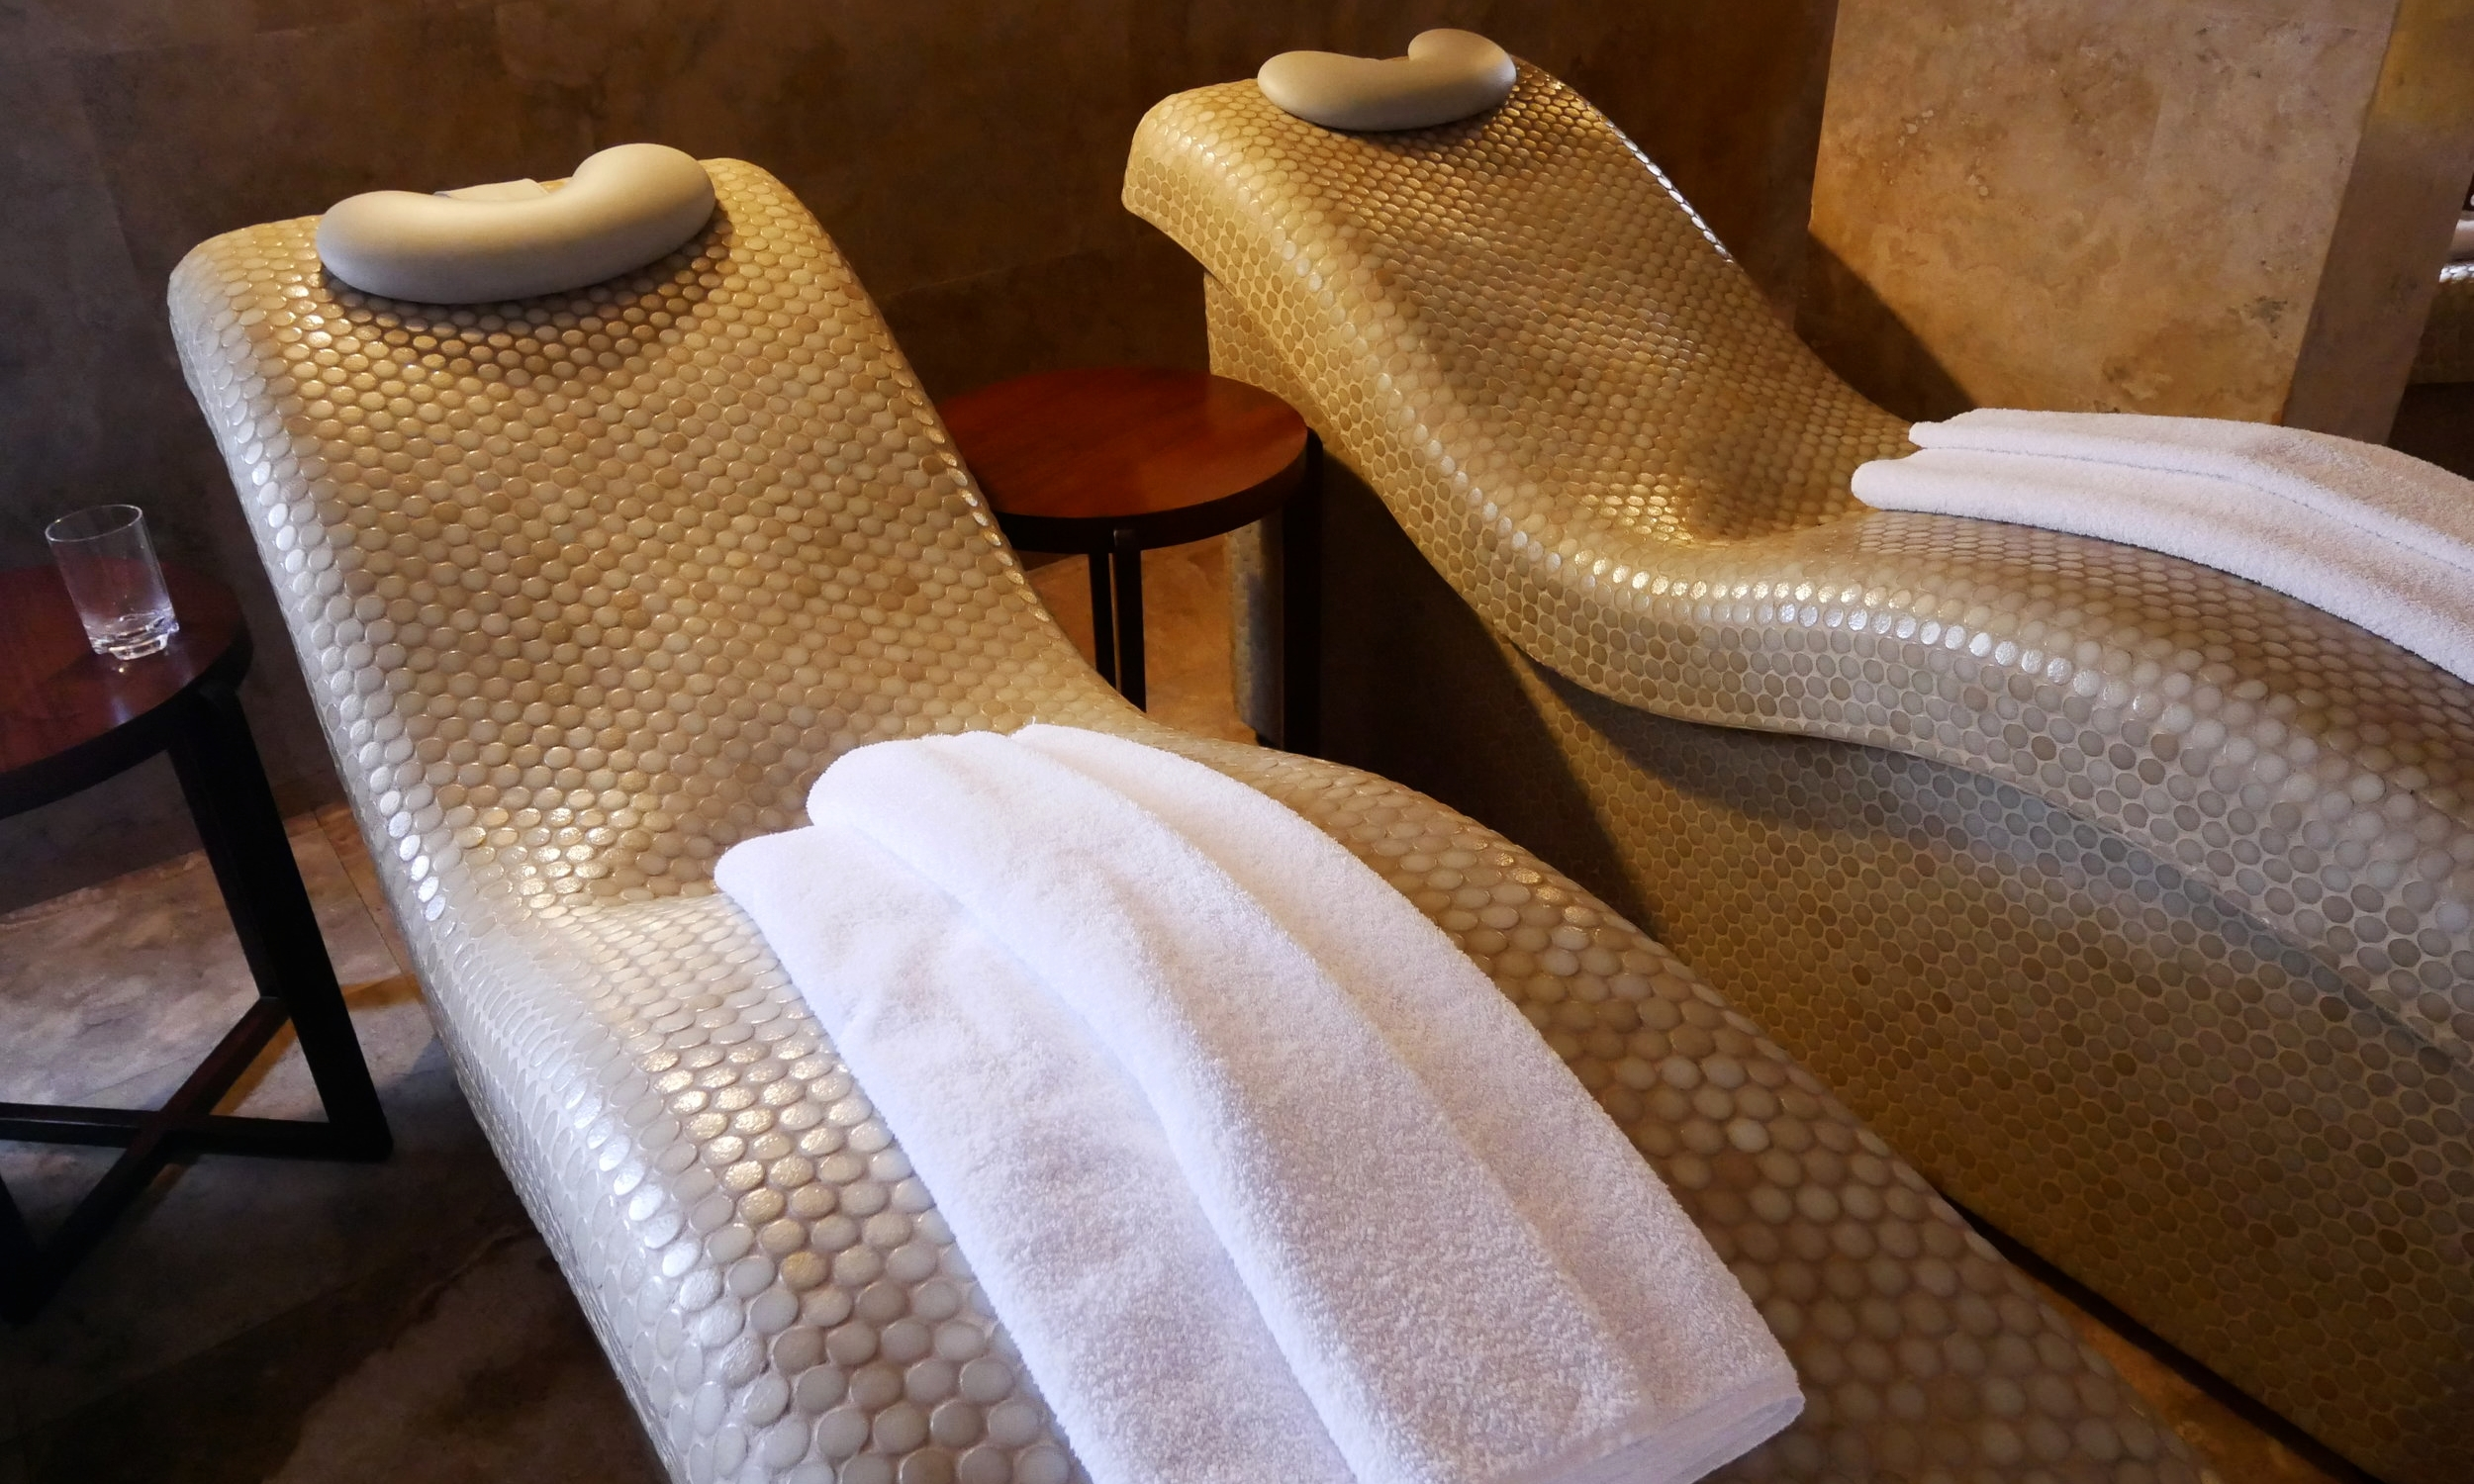 Chaise longue chillout in the spa's Relaxation Room